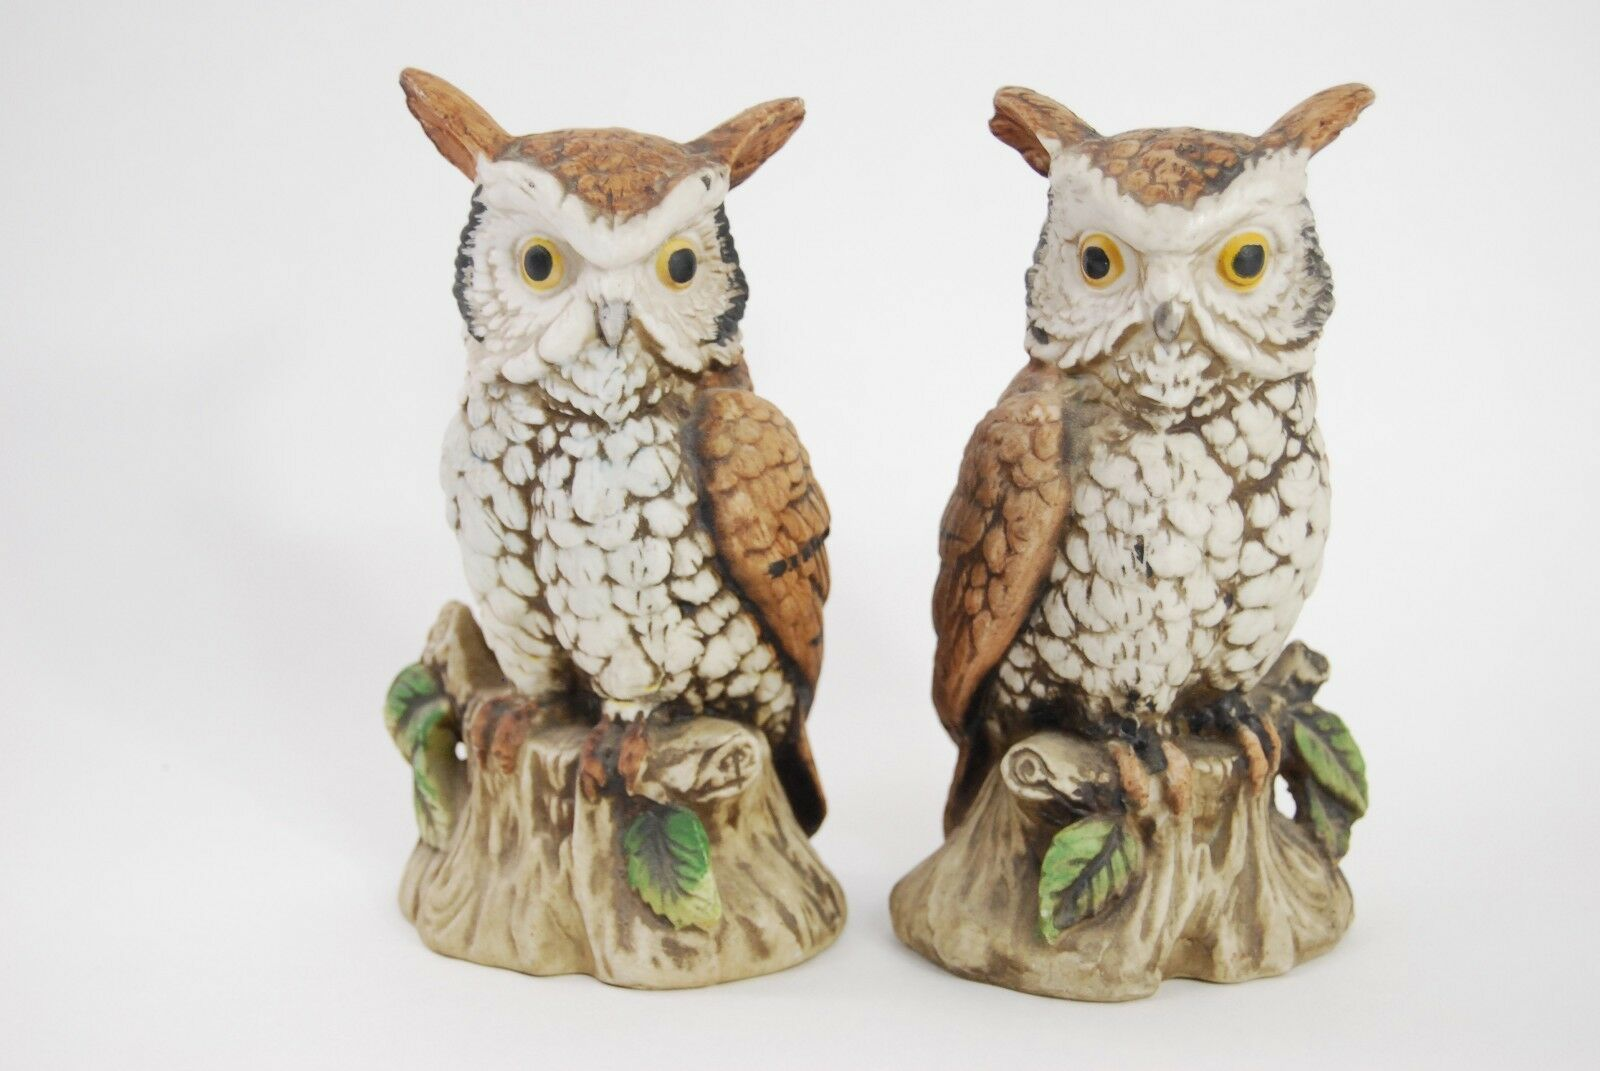 Primary image for Porcelain Owl Figurines - ARDCO C-3213 - Made in Taiwan - Set of 2